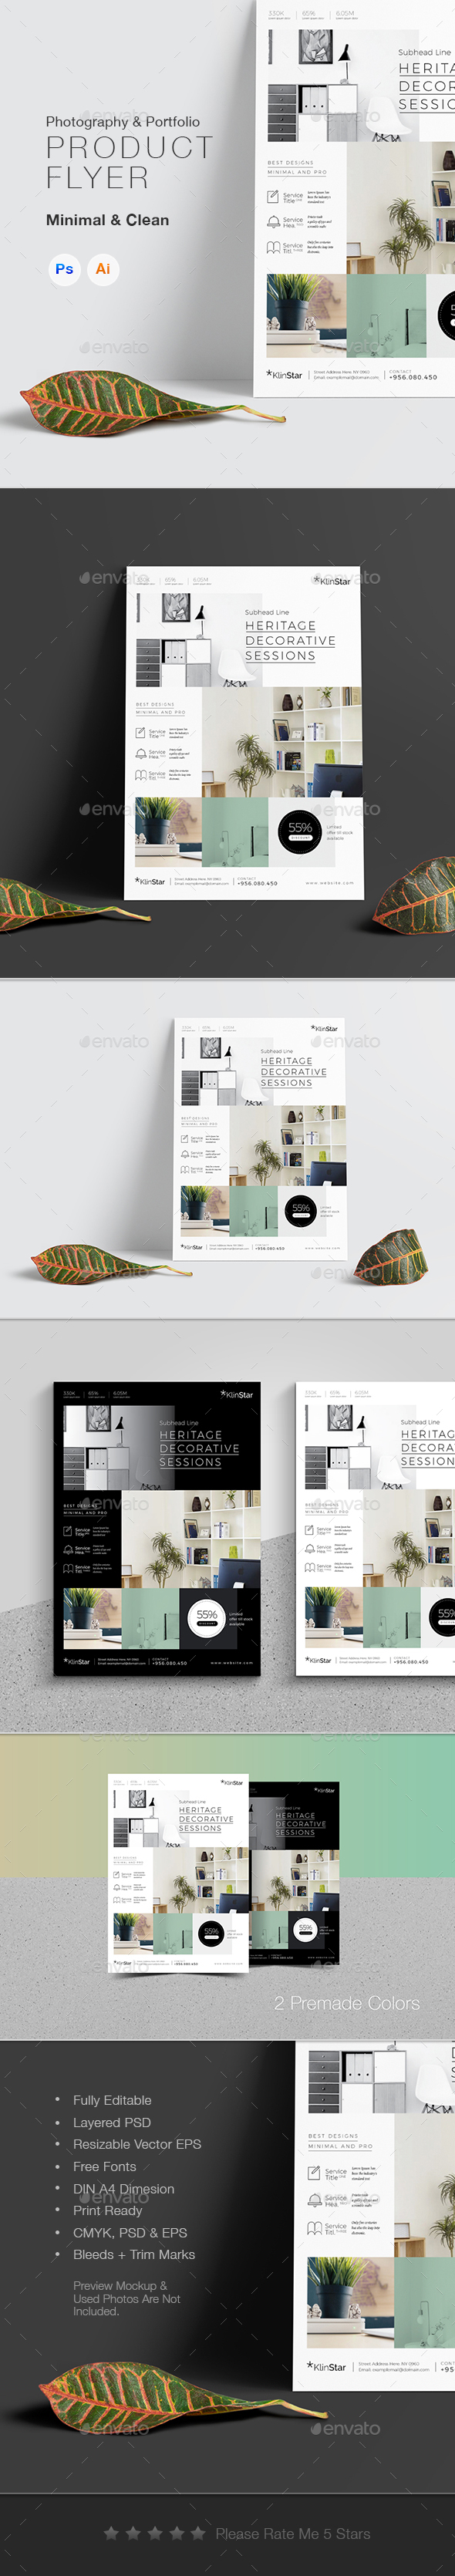 Product & Photography Showcase Flyer - Corporate Business Cards